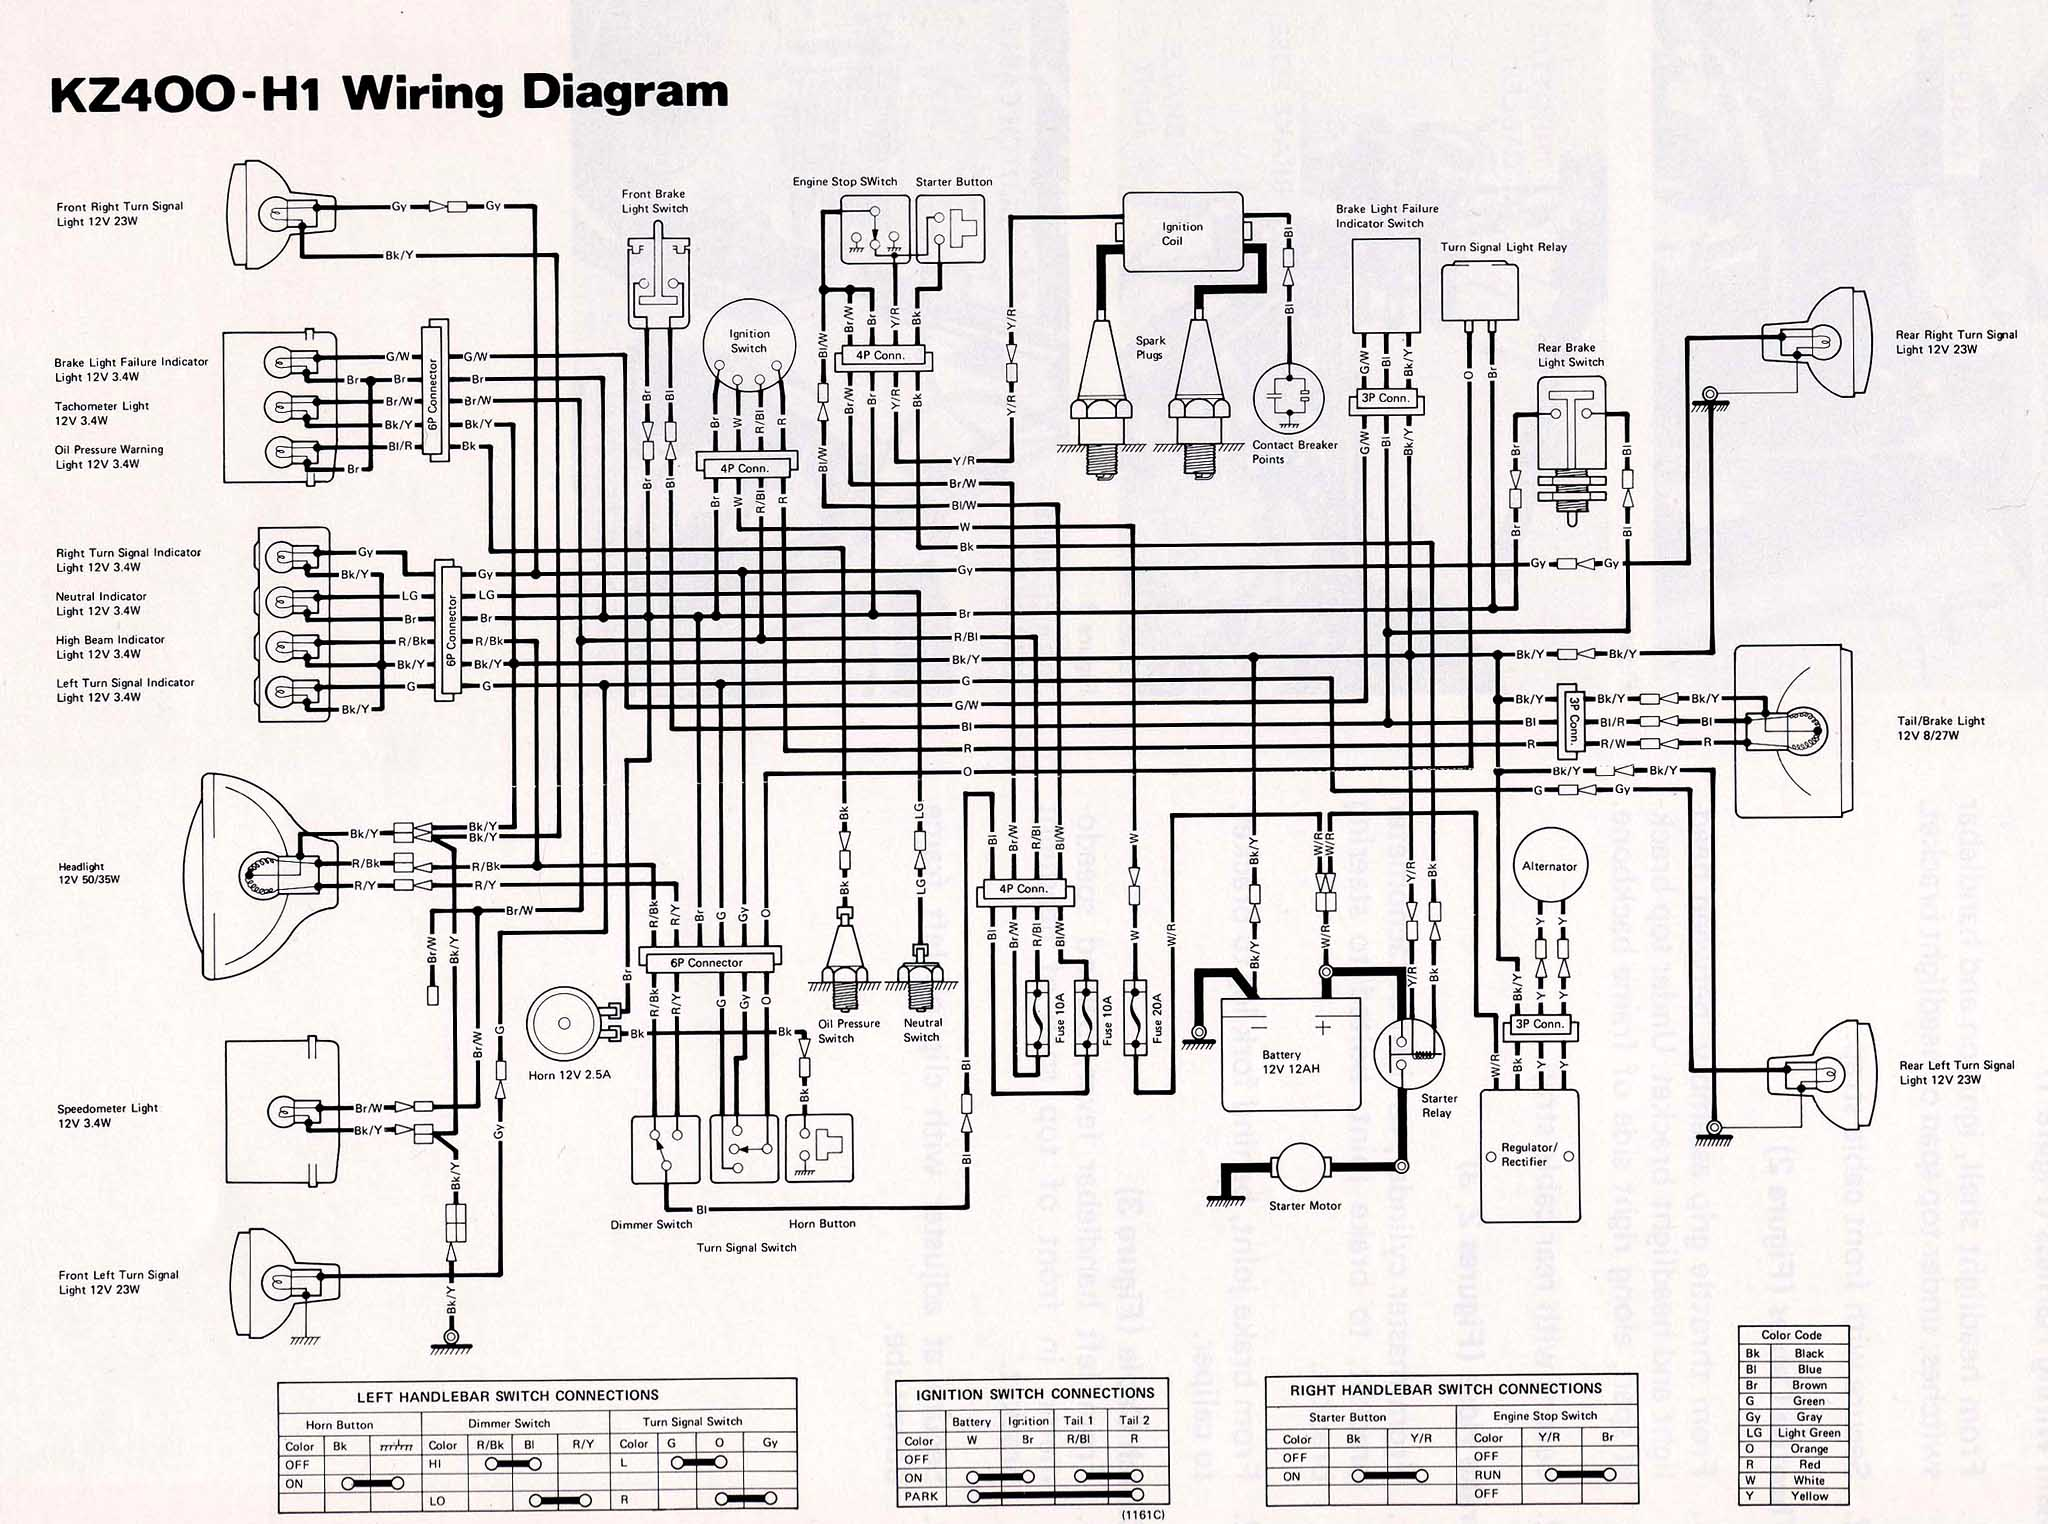 Rotation of KZ400 H1 LTD 22 index of techh tips bilder wiring diagrams 81 kz440 wiring diagram at bakdesigns.co